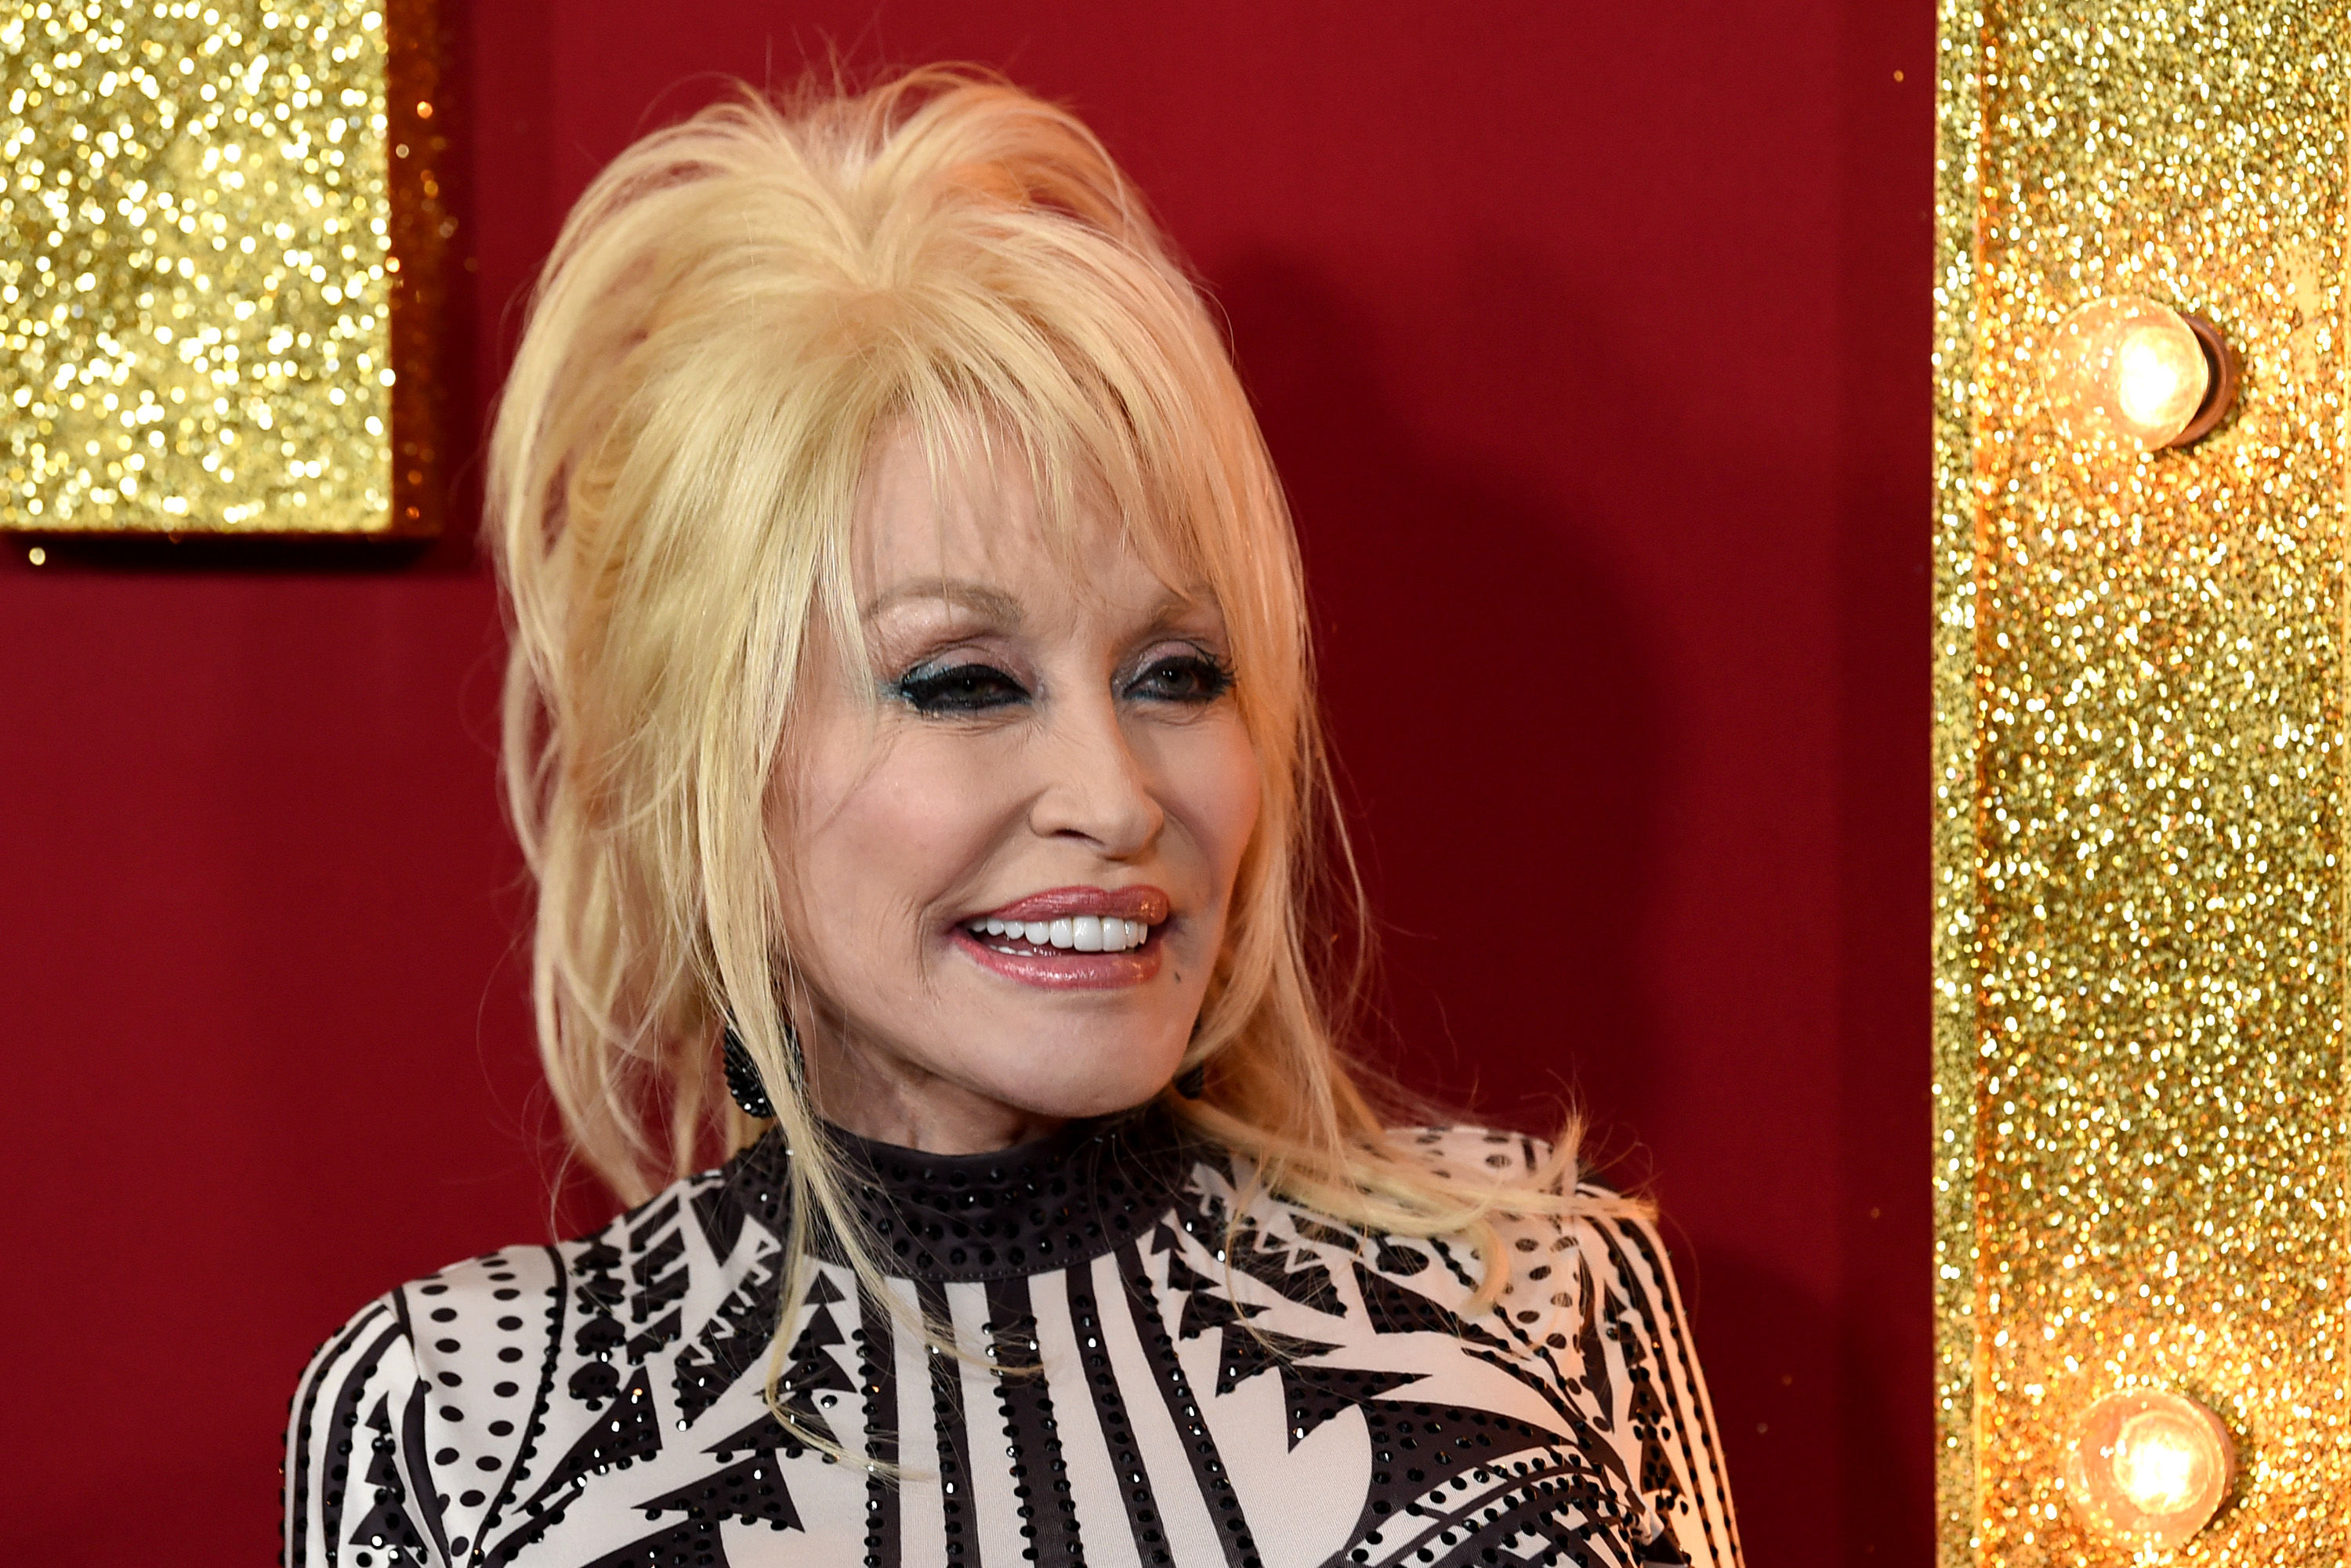 Celebrate Dolly Parton's Birthday in This Meaningful Way